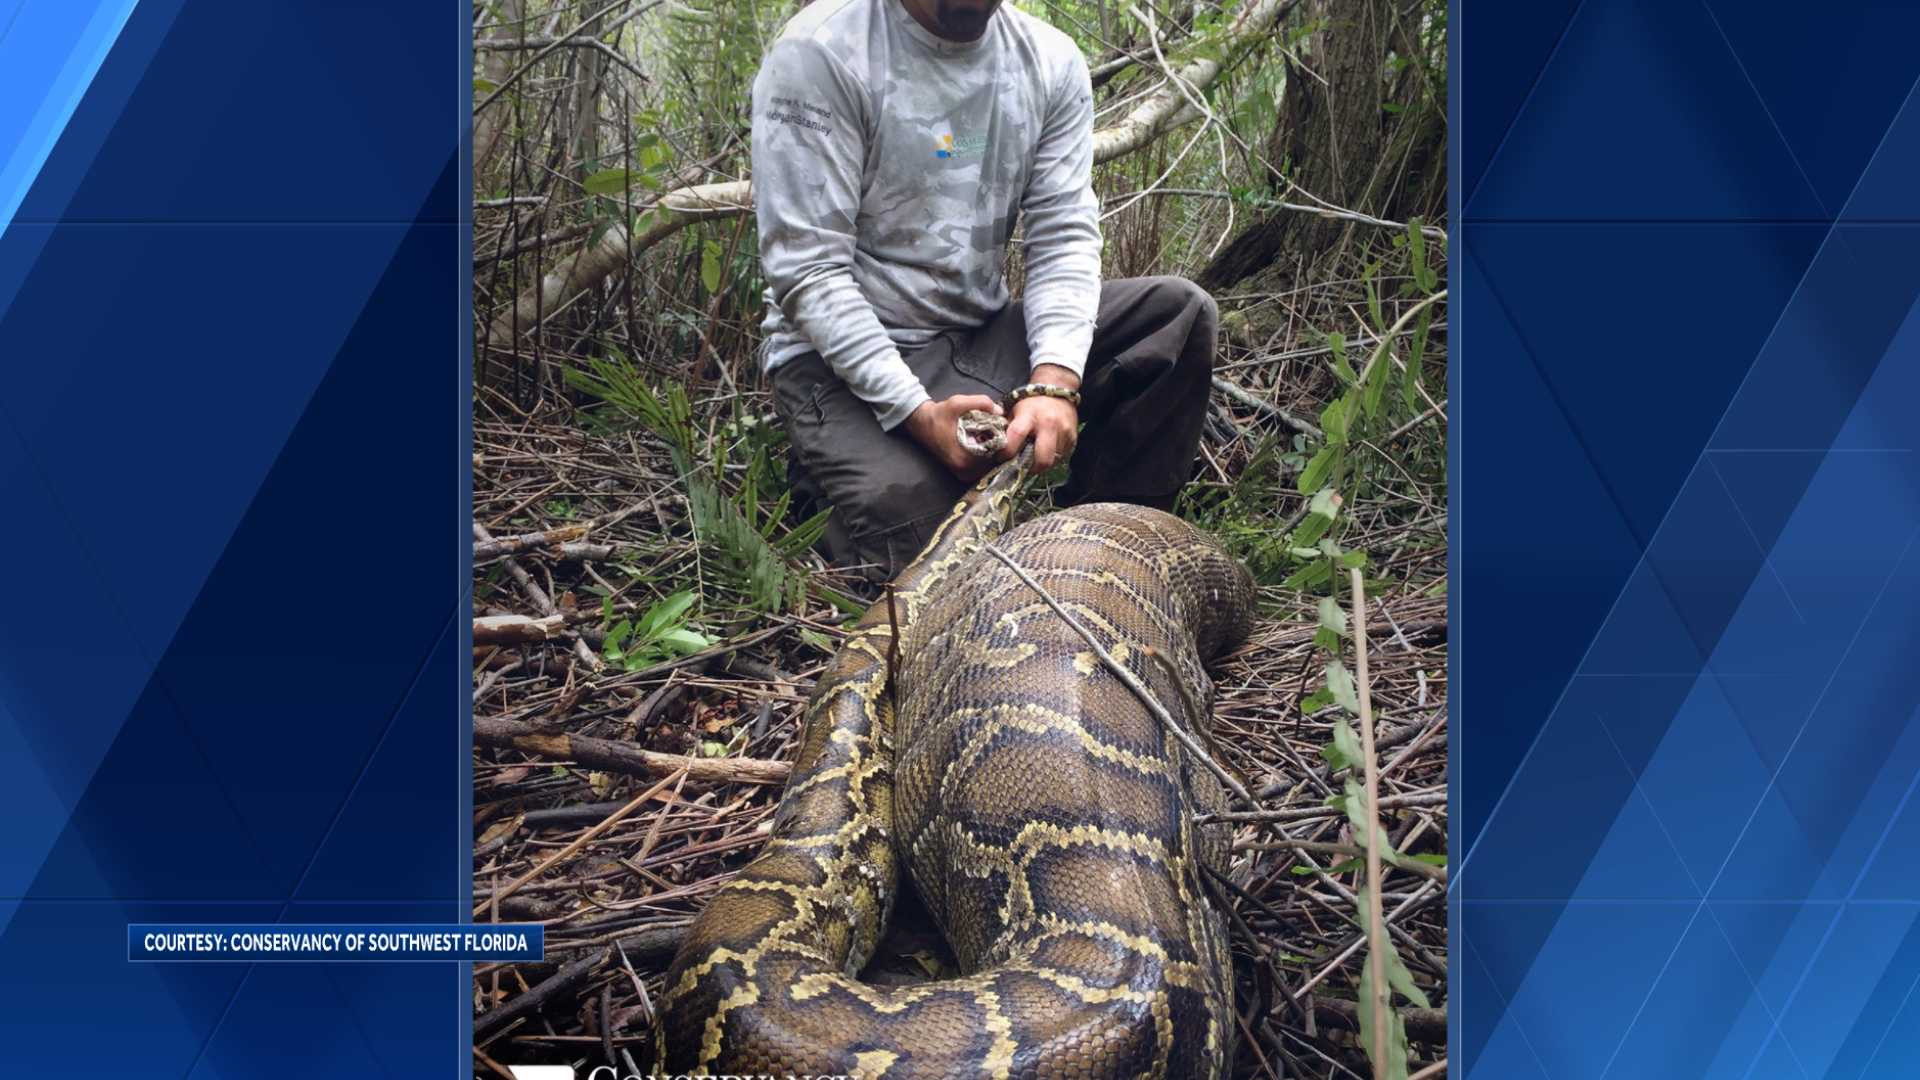 Photos of Burmese python swallowing 35 pound deer released by officials